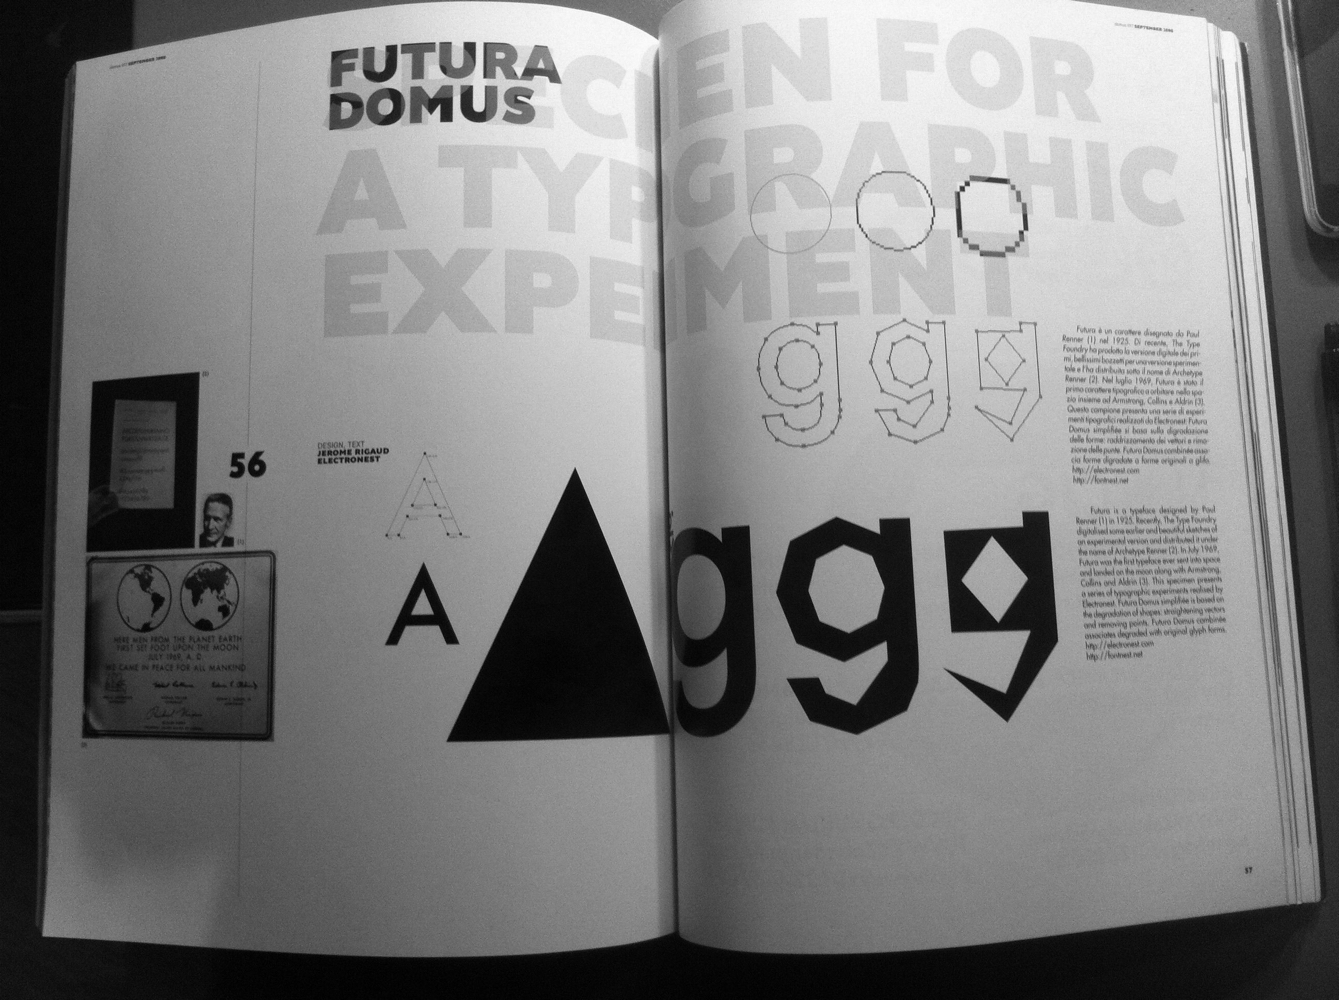 Domus Futura, typeface commissioned for the architecture magazine Domus